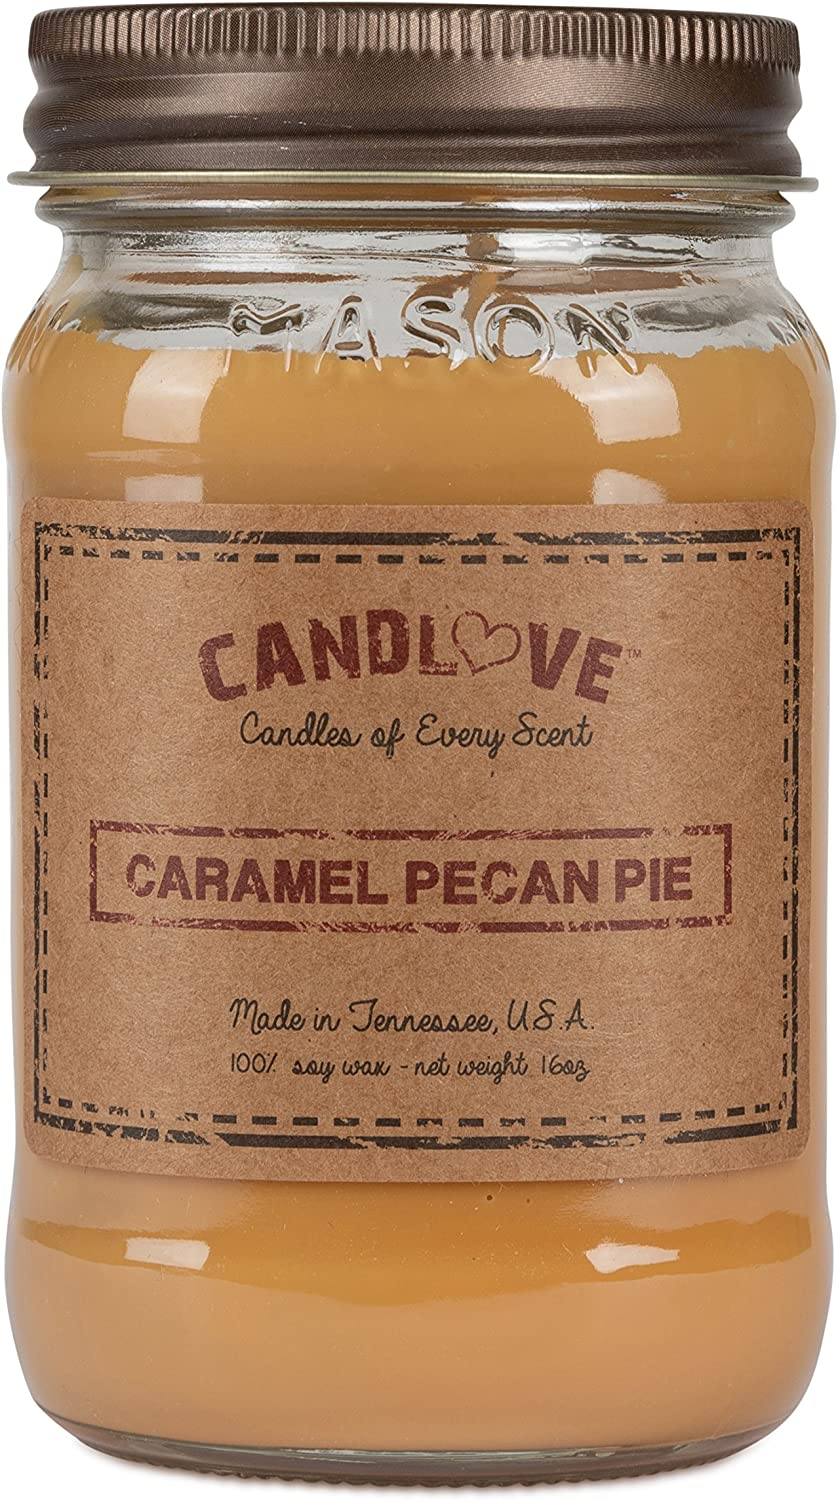 Candlove Caramel Pecan Pie Scented 16oz Mason Jar Candle 100% Soy Made in The USA